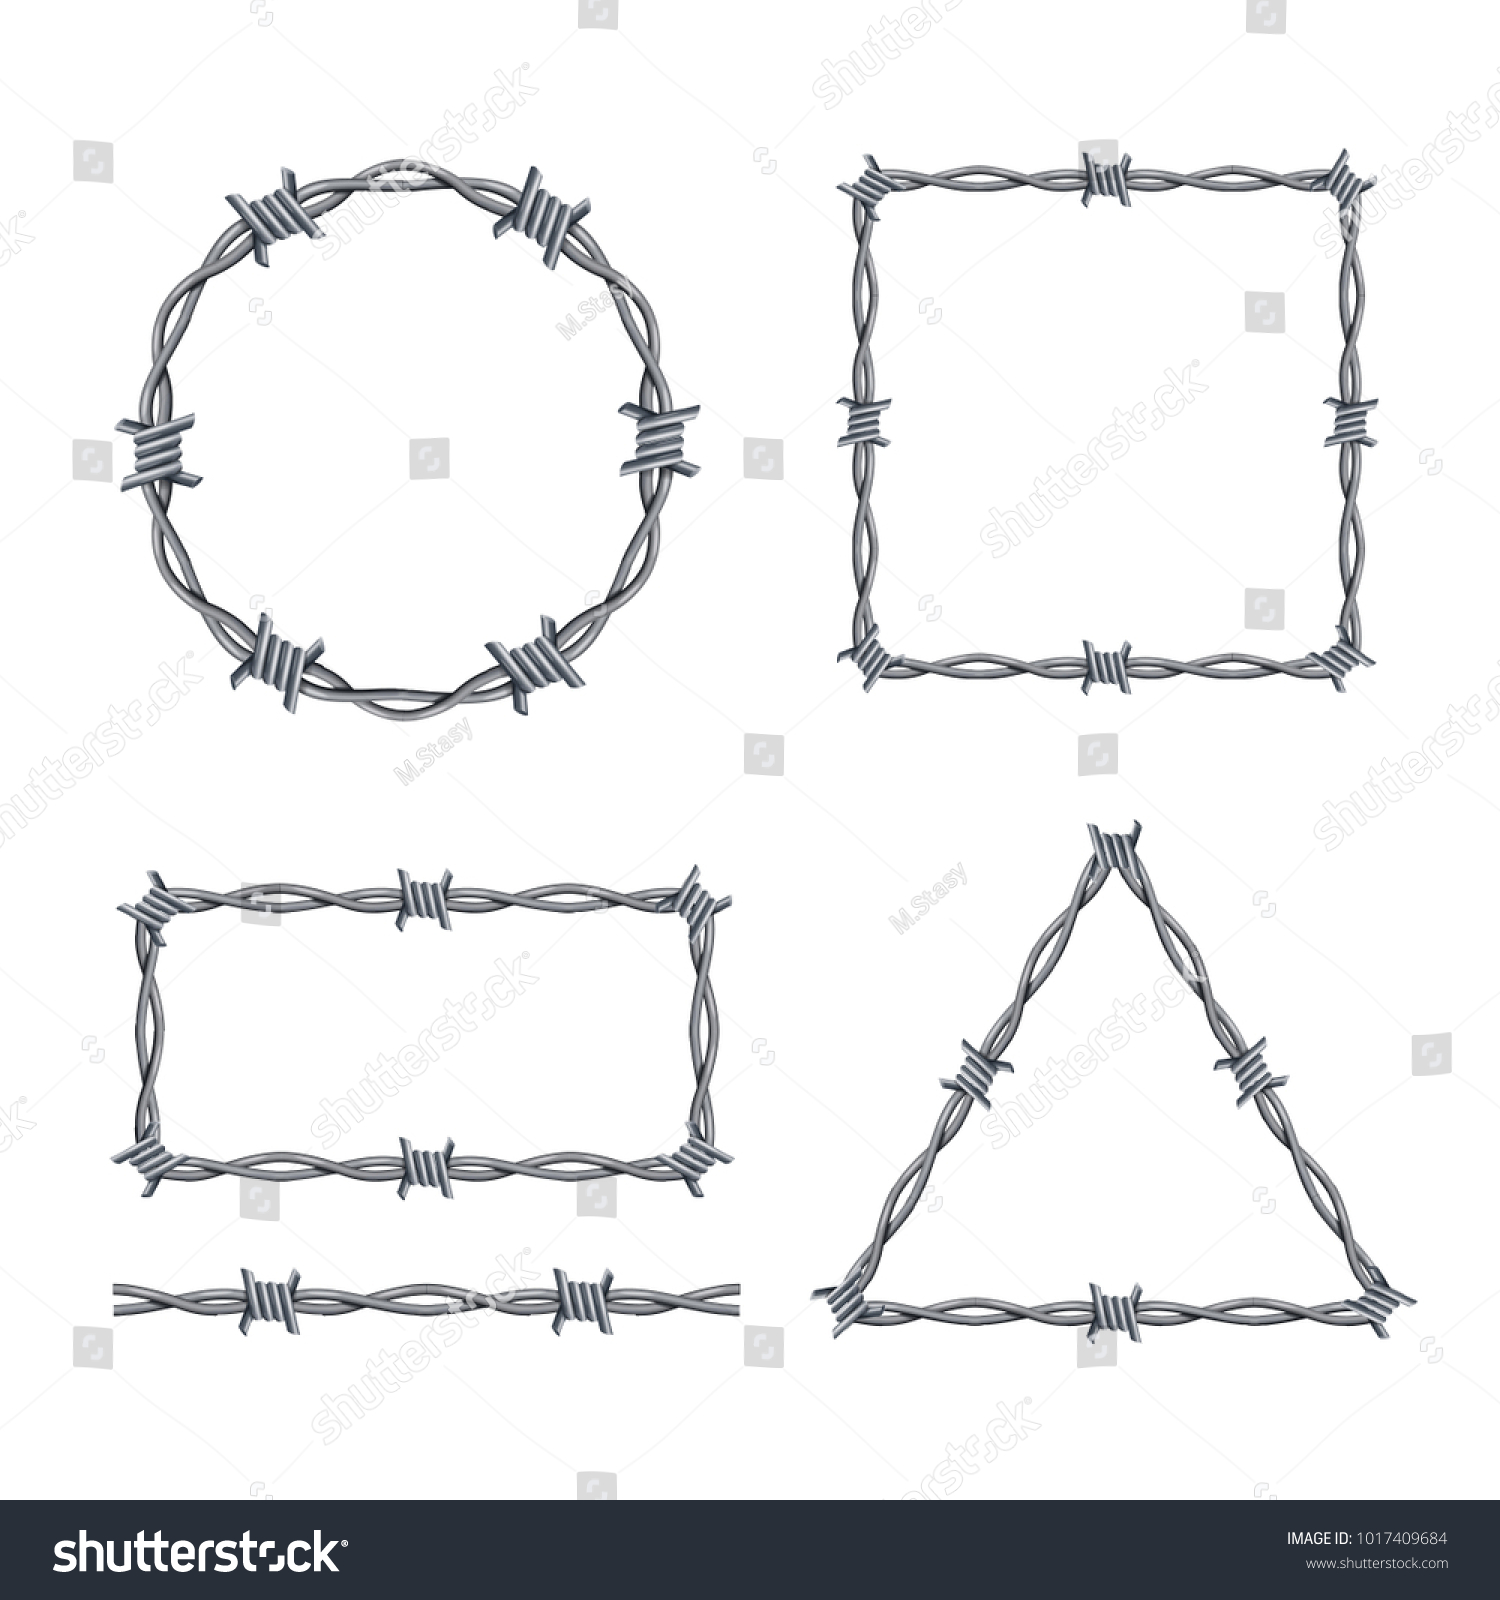 Realistic 3 D Detailed Barbed Wire Frames Stock Vector Royalty Free Wiring Diagram 3d Set Different Types Geometric Figures Include Of Triangle And Rectangle